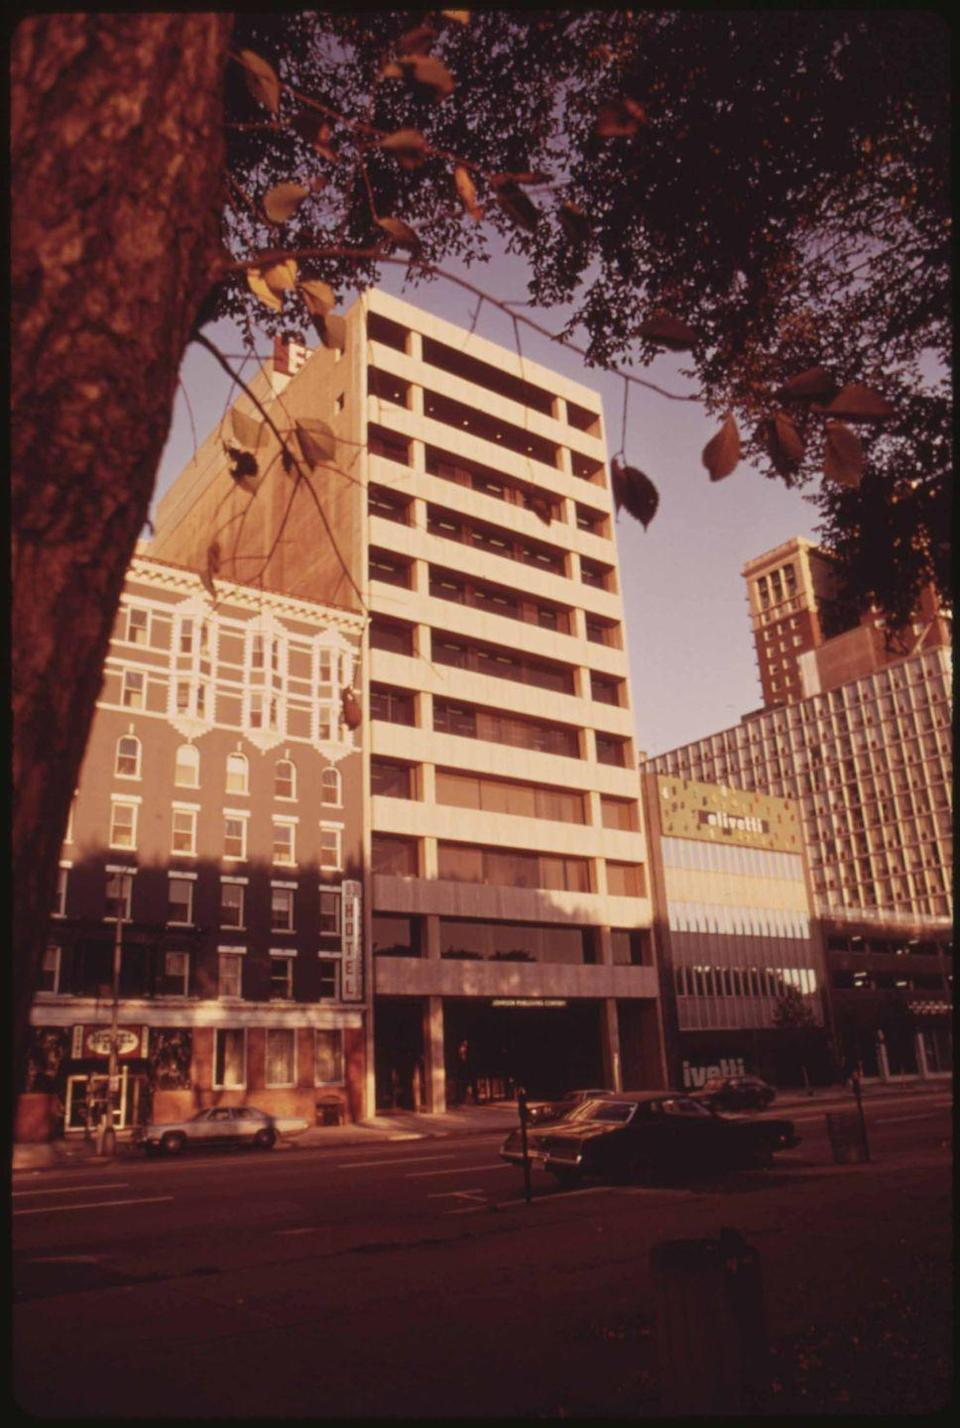 "<p>After graduating in 1948 with a degree in architecture from the Illinois Institute of Technology where he studied under Mies Van Der Rohe, Moutoussamy became the first Black architect to design a high-rise building in Chicago. That building, the Johnson Publishing Company headquarters (shown), was home to the <em>Ebony</em> and <em>Jet </em>magazine offices and remains the only downtown Chicago tower designed by a Black architect.</p><p>Moutoussamy designed many other buildings in Chicago, including Richard J. Daley College, Olive–Harvey College, Harry S. Truman College, and the Chicago Urban League building. He was a partner at Dubin Dubin Black & Moutoussamy and served on the board of trustees of Loyola University Chicago and the <a href=""https://www.artic.edu/"" rel=""nofollow noopener"" target=""_blank"" data-ylk=""slk:Art Institute of Chicago"" class=""link rapid-noclick-resp"">Art Institute of Chicago</a>.</p>"